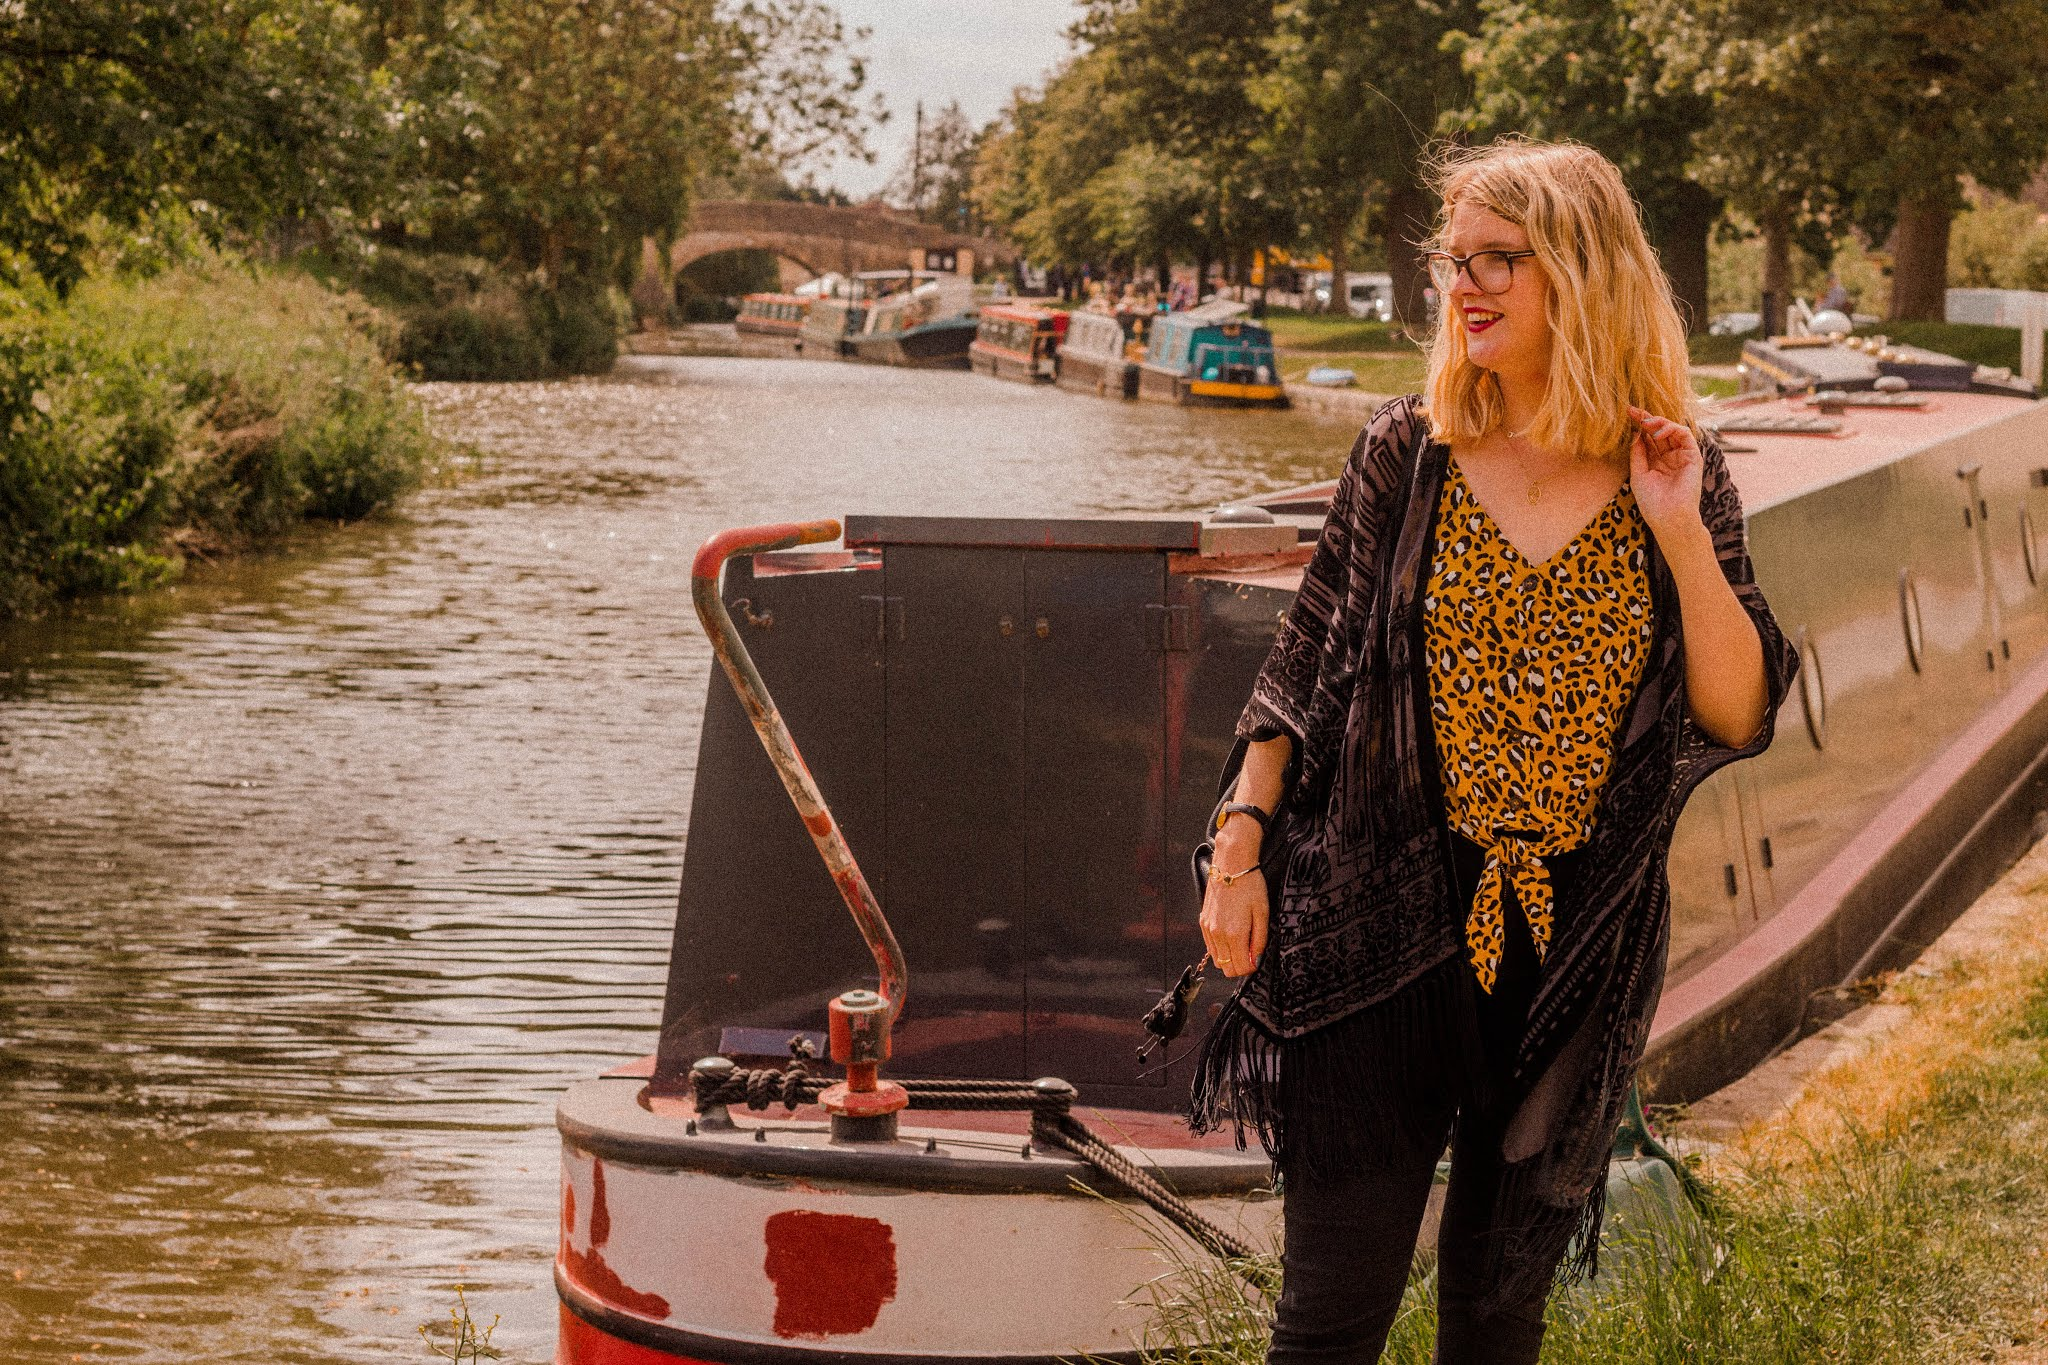 Blonde Girl by Water, wearing jeans and kimono & leopard tee - 2019 goals 6 month review